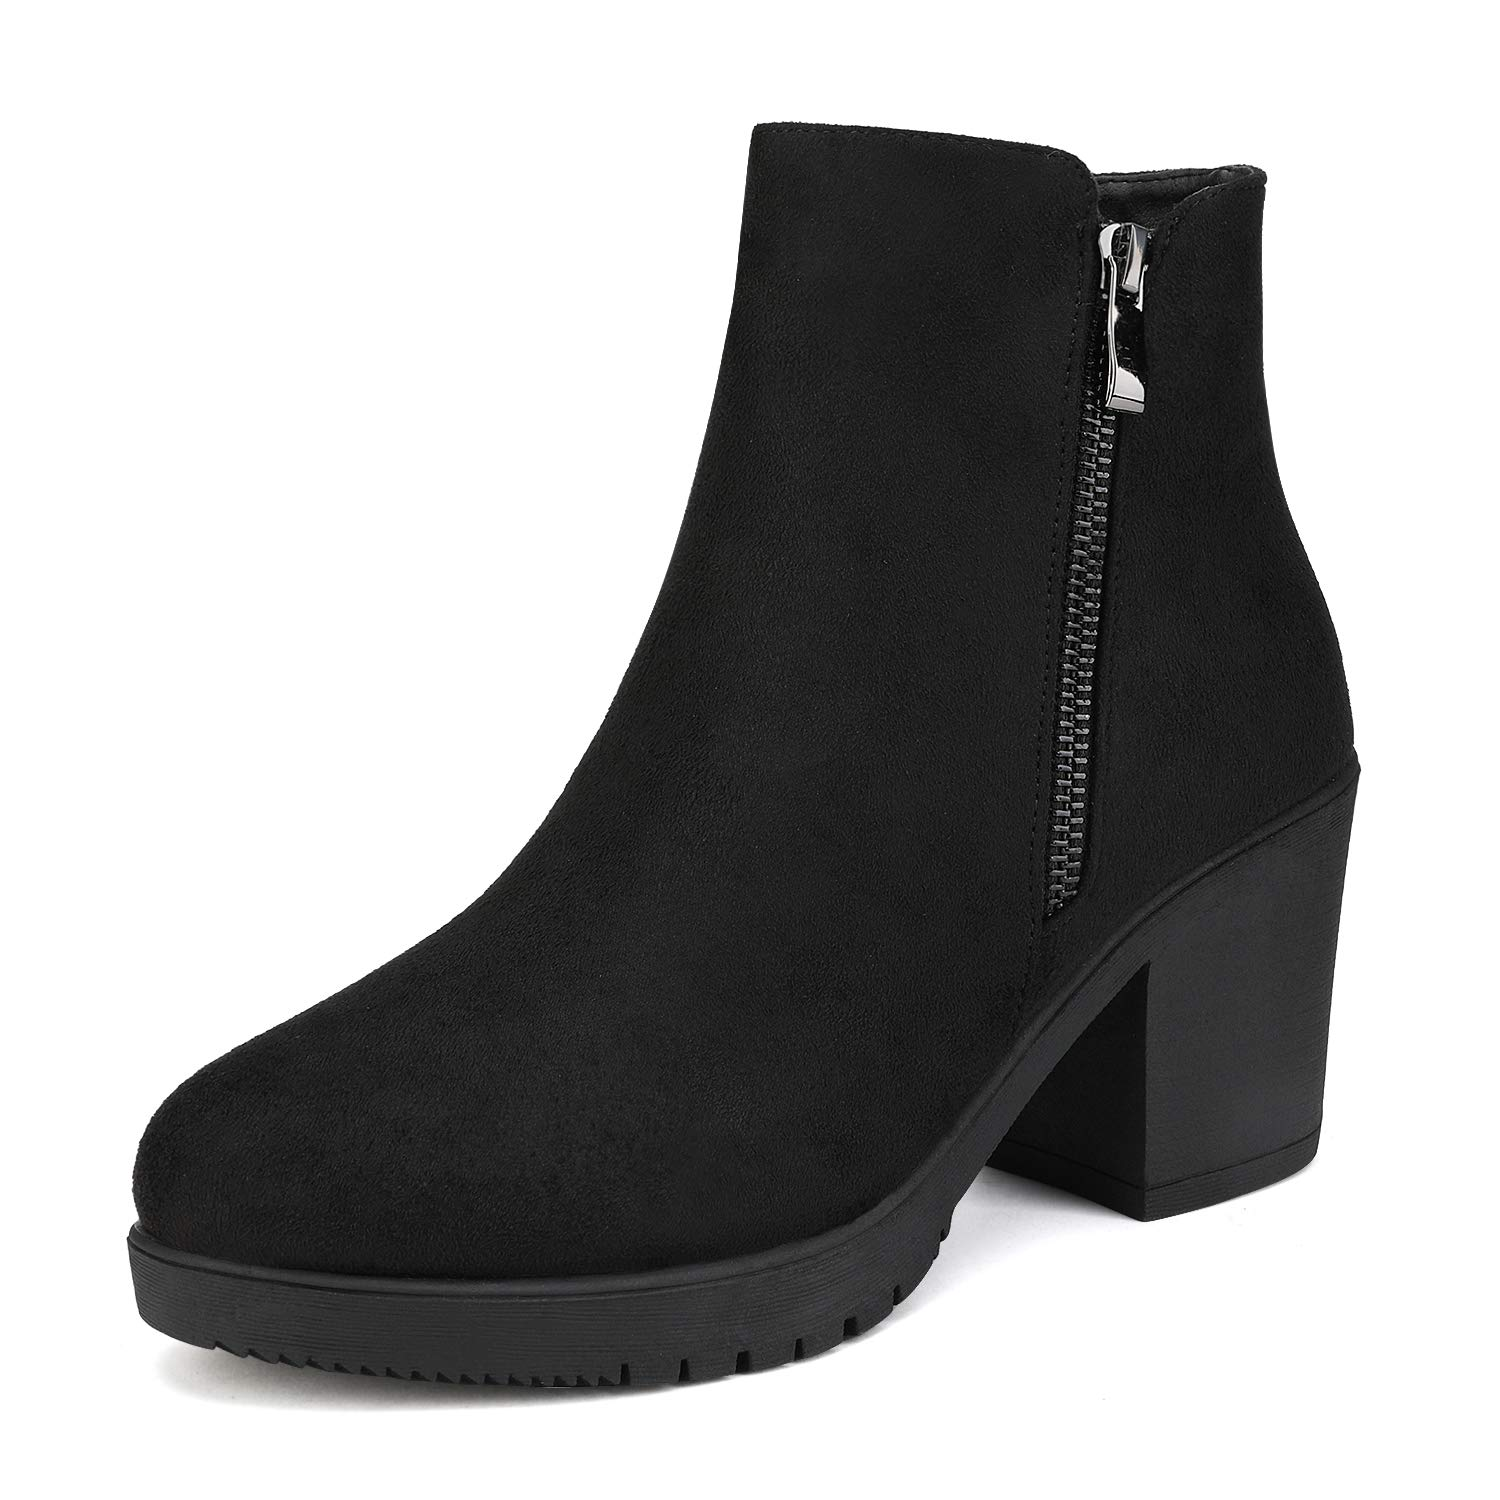 DREAM PAIRS Womens Platform Booties